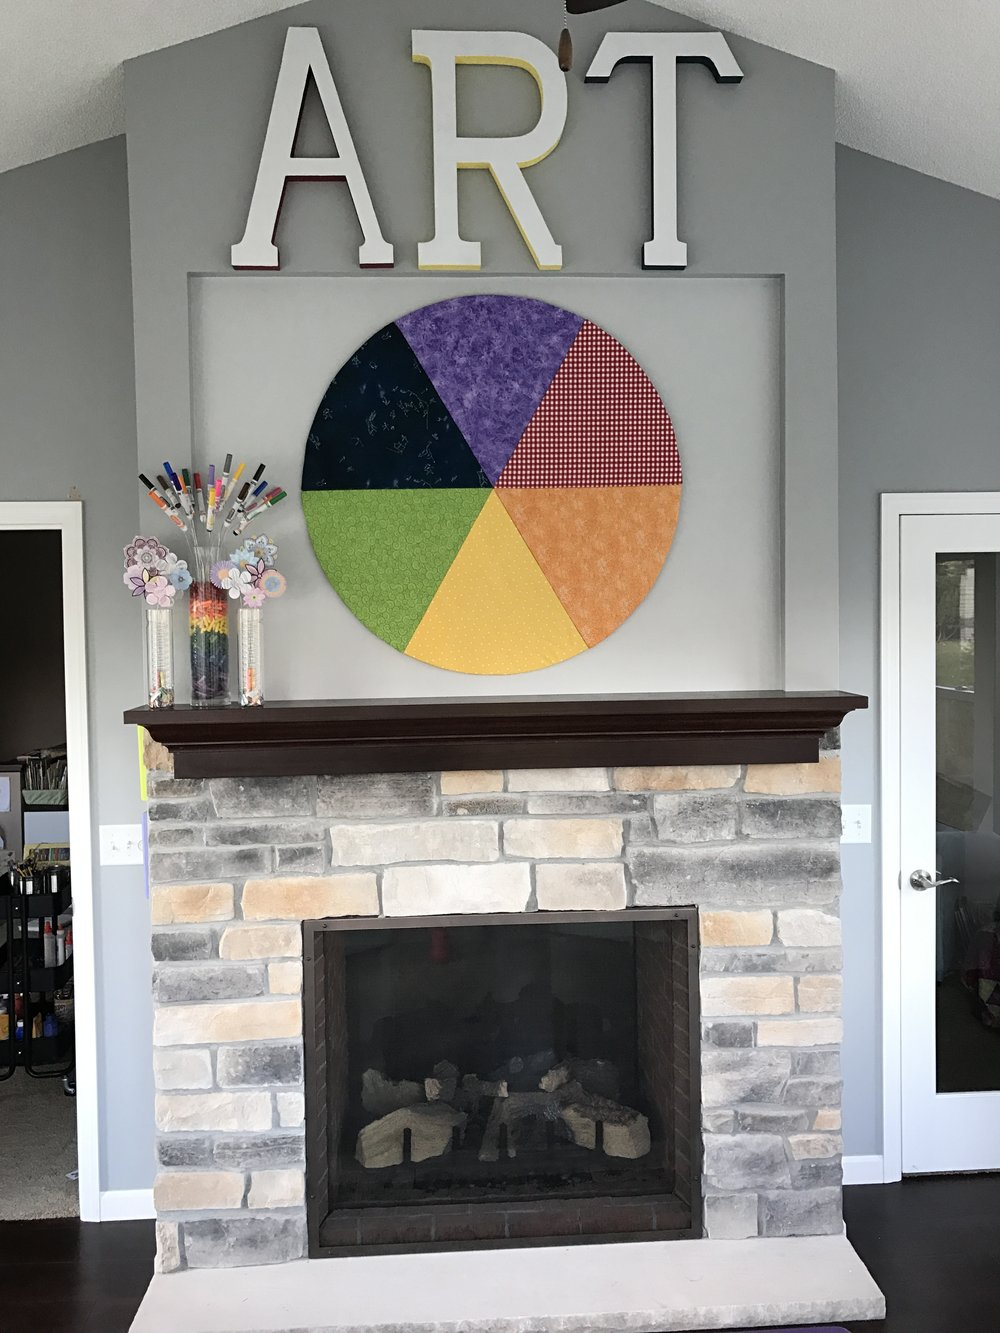 This is a double fireplace. The other side shows up in the living room. The color wheel is made using the same fabrics as the pillows. They are stapled to pie shaped wedges. I was so glad to have a math background when we figured out how to hang this. Did you notice the marker bouquet?